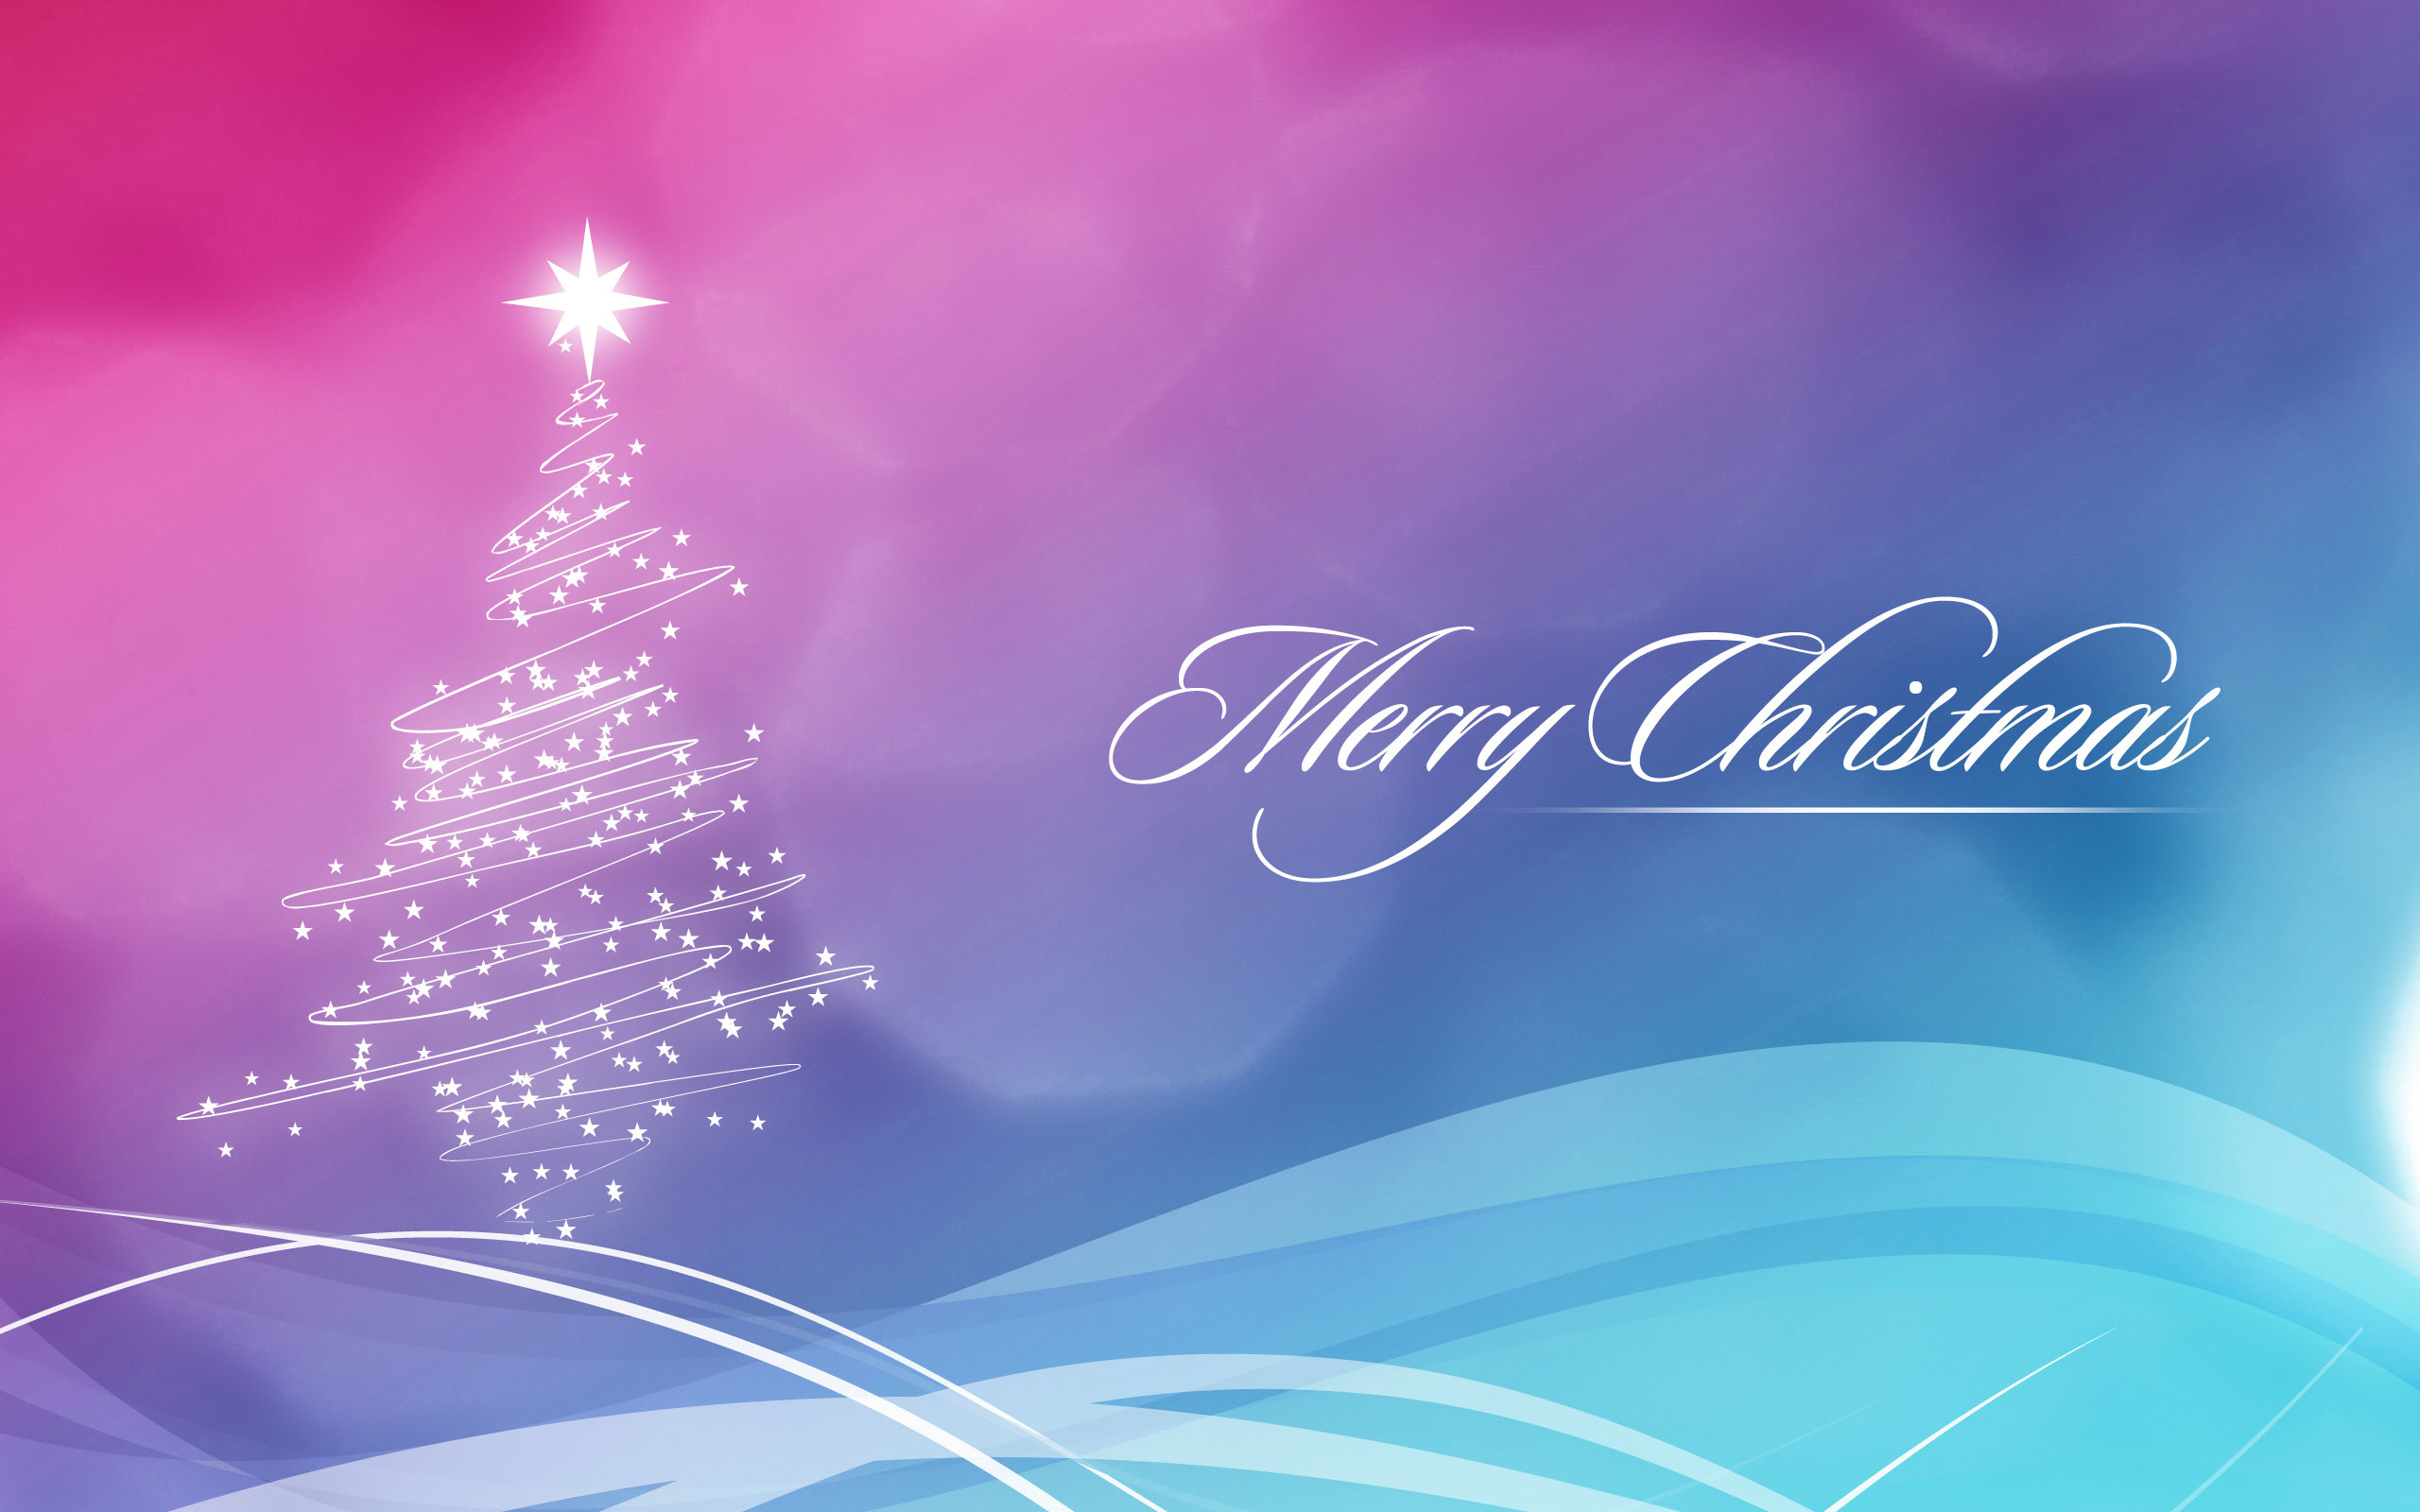 2560x1600 Merry Christmas Widescreen Wallpaper